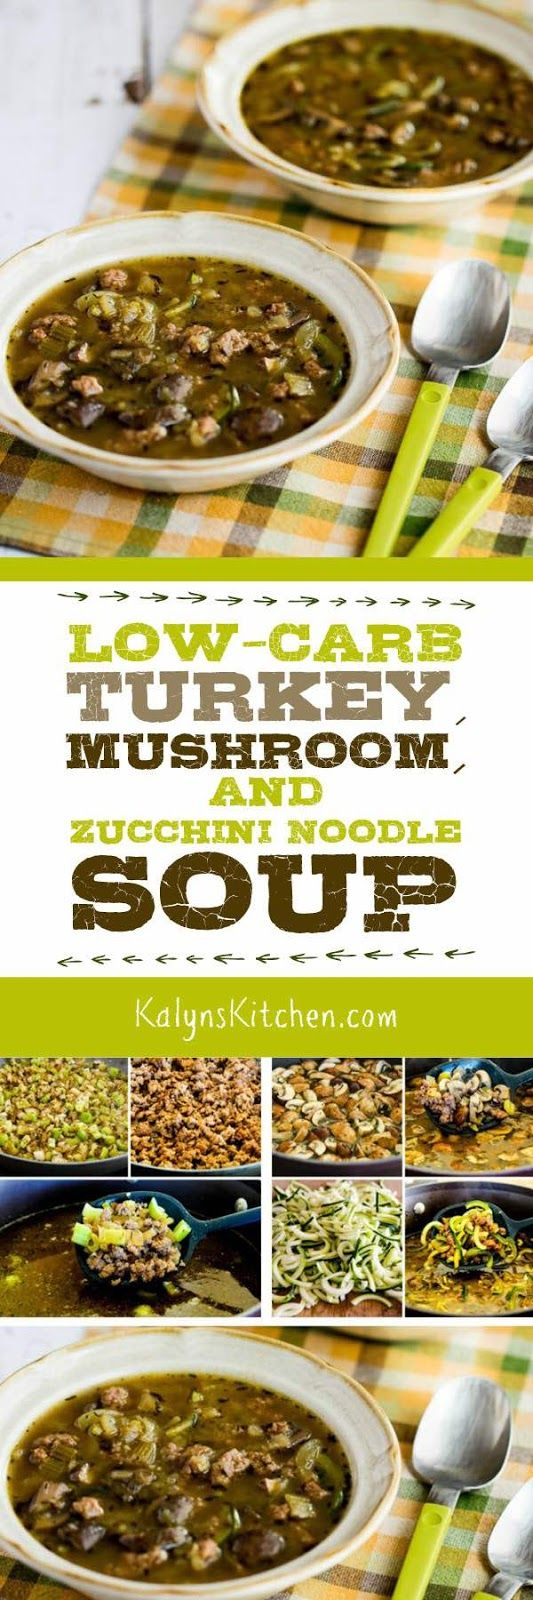 Low-Carb Turkey, Mushroom, and Zucchini Noodle Soup (video)